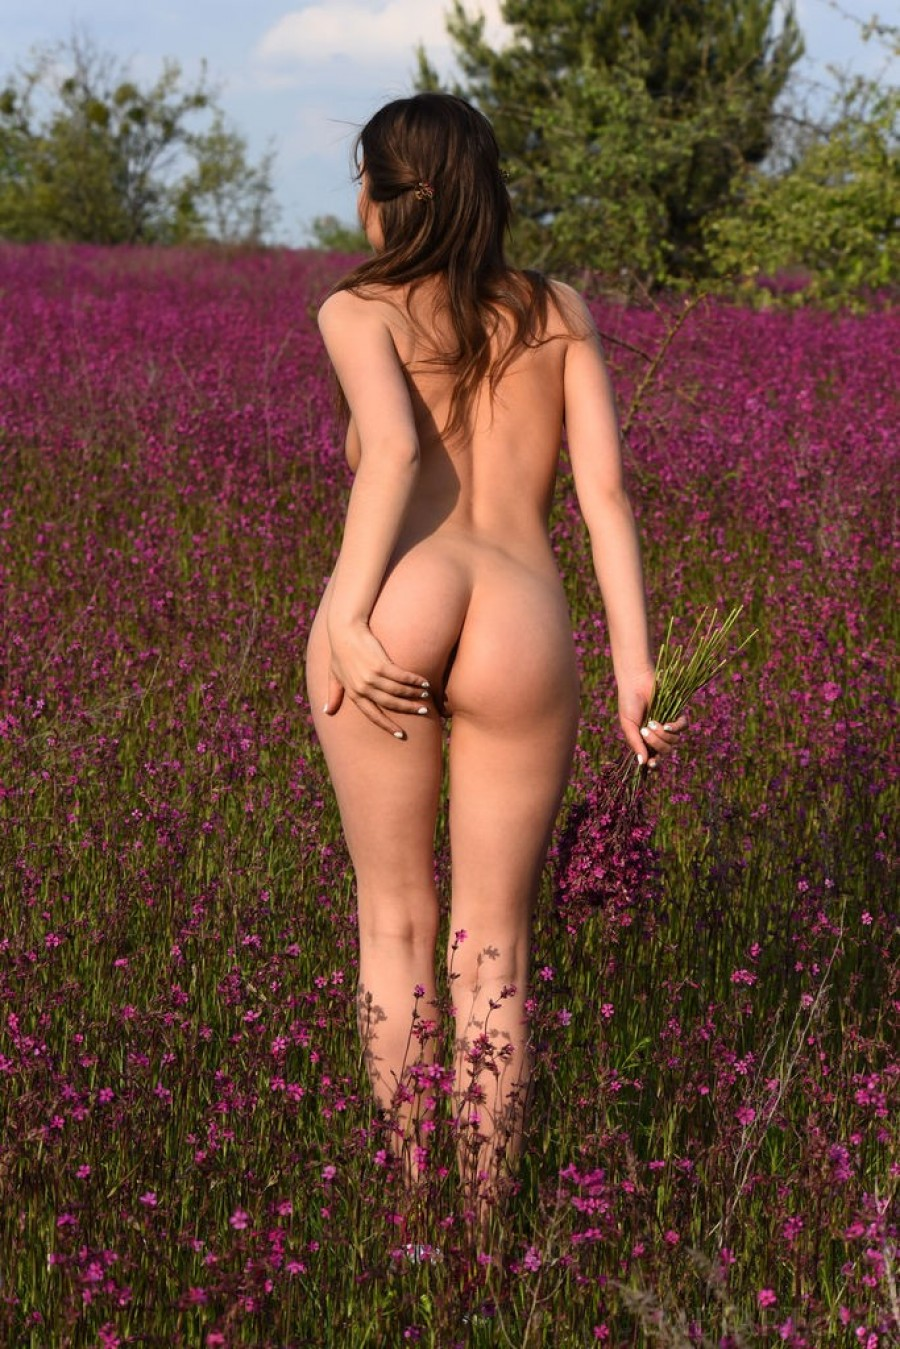 Hottie orgasms in the field of flowers